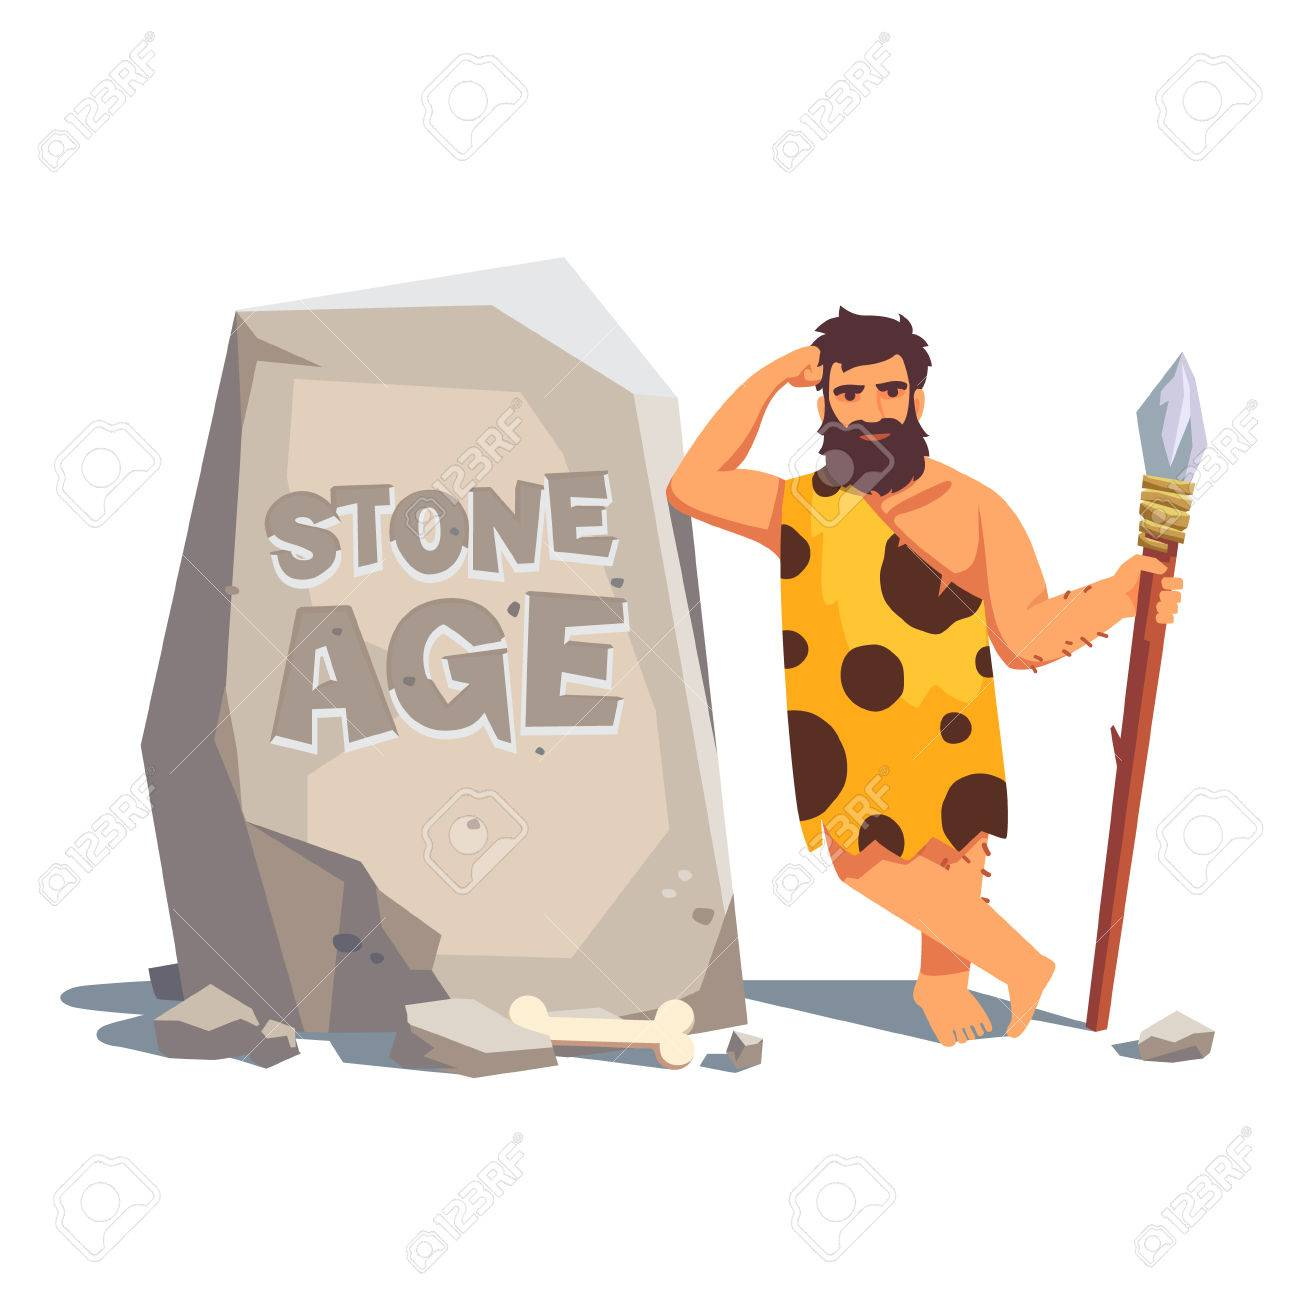 Stone age engraving on a big tablet rock with leaning caveman. Flat style vector illustration isolated on white background. - 52904076